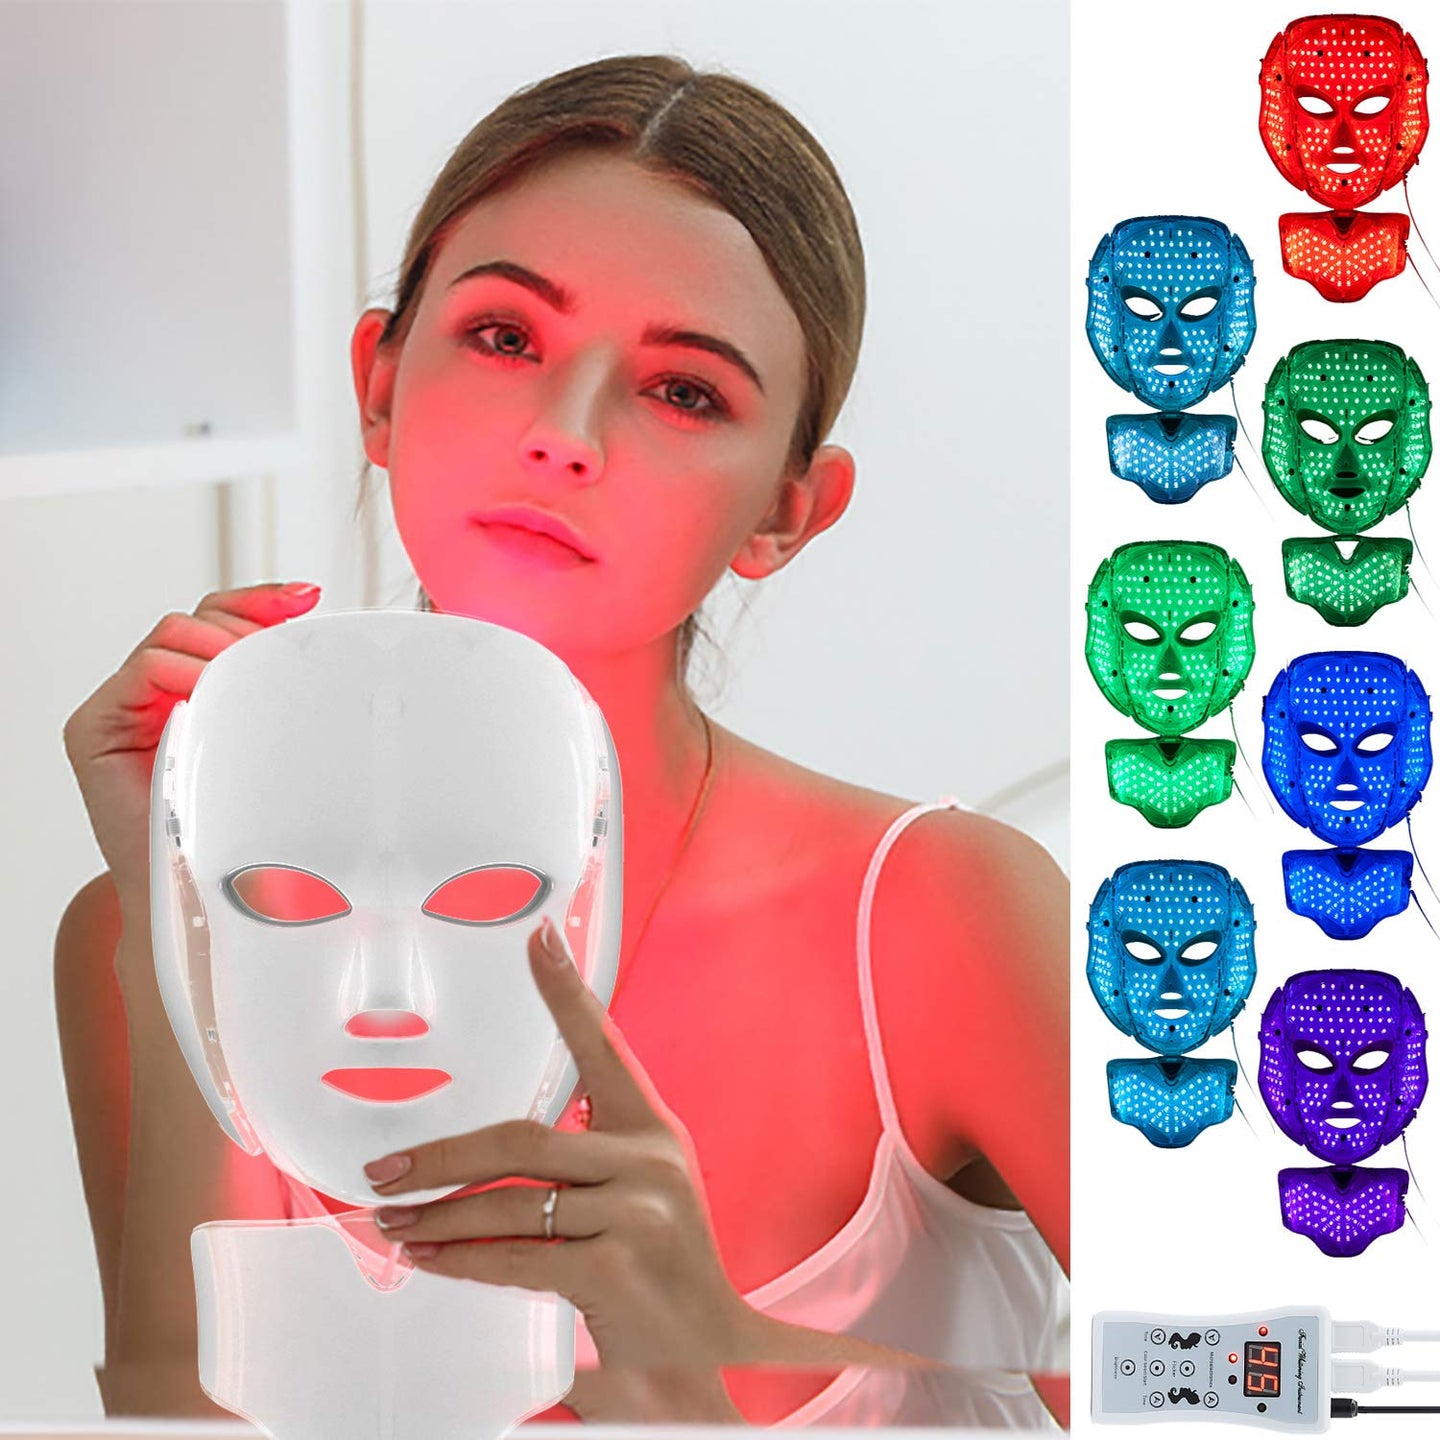 Led Face Mask with 7 Color Facial Skin Deall Mask Proven Light Therapy Acne Photon Mask (White)